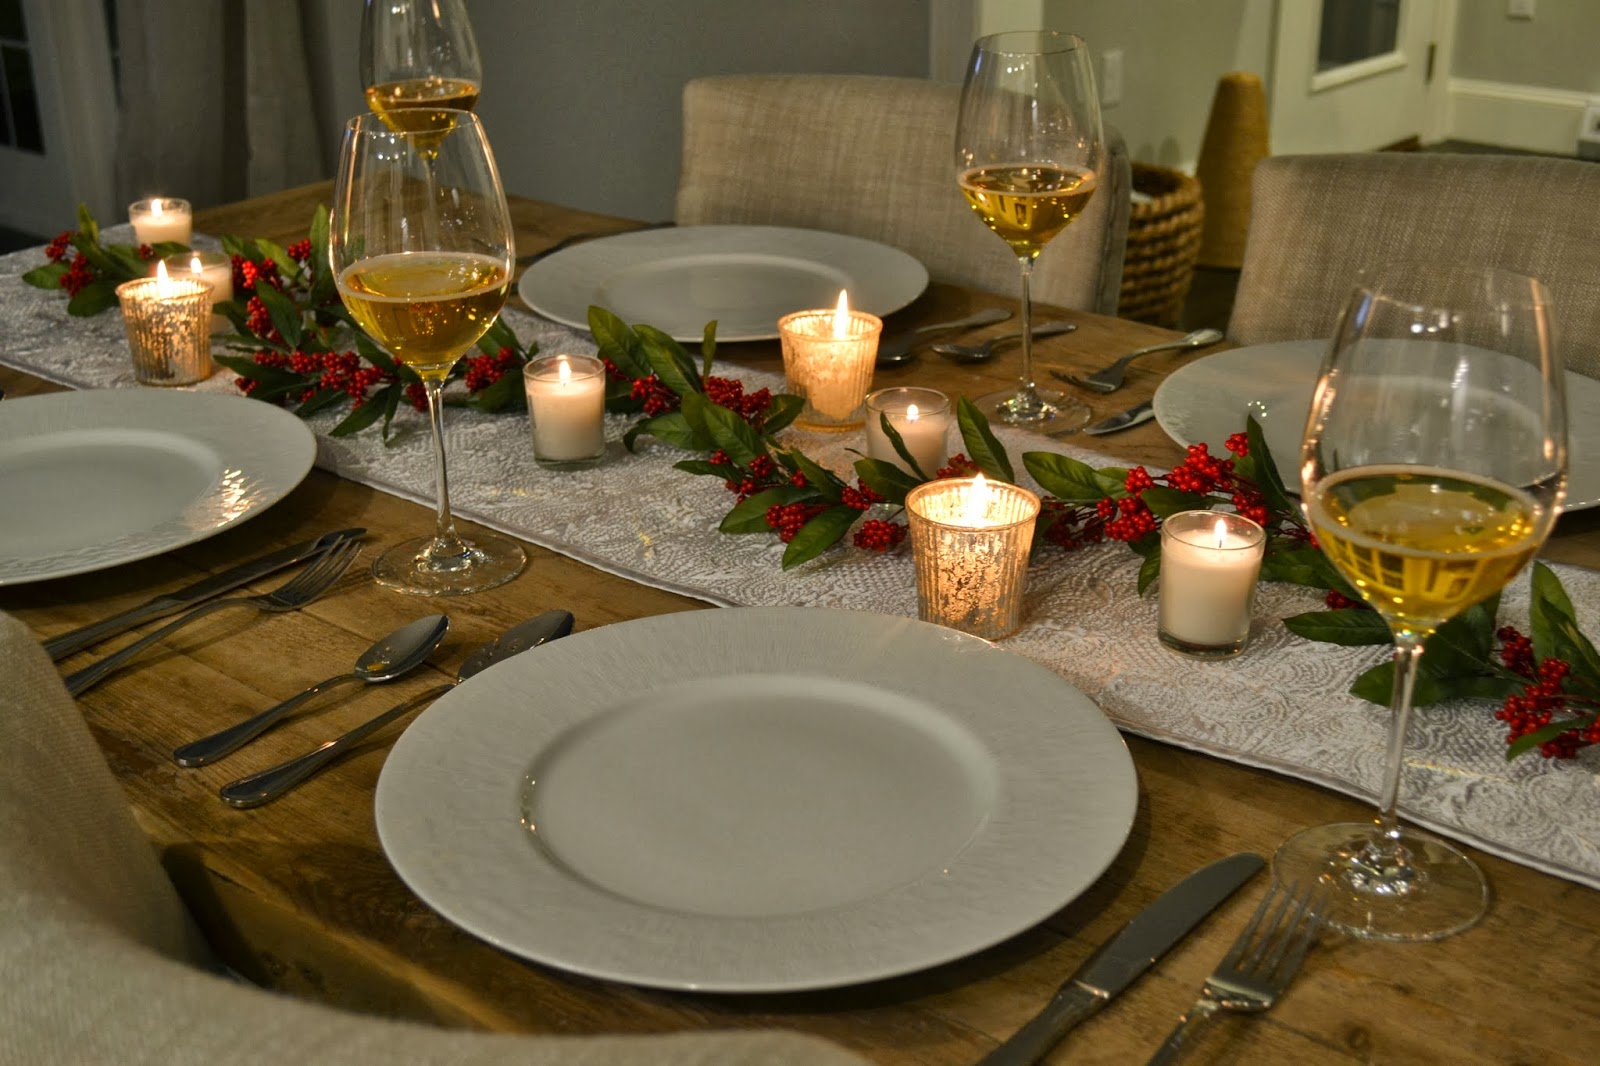 ... it would be a nice table setting! It was very romantic especially when I dimmed the lights. I will definitely re-create this again! & all sorts of Ricci: A Romantic Holiday Table